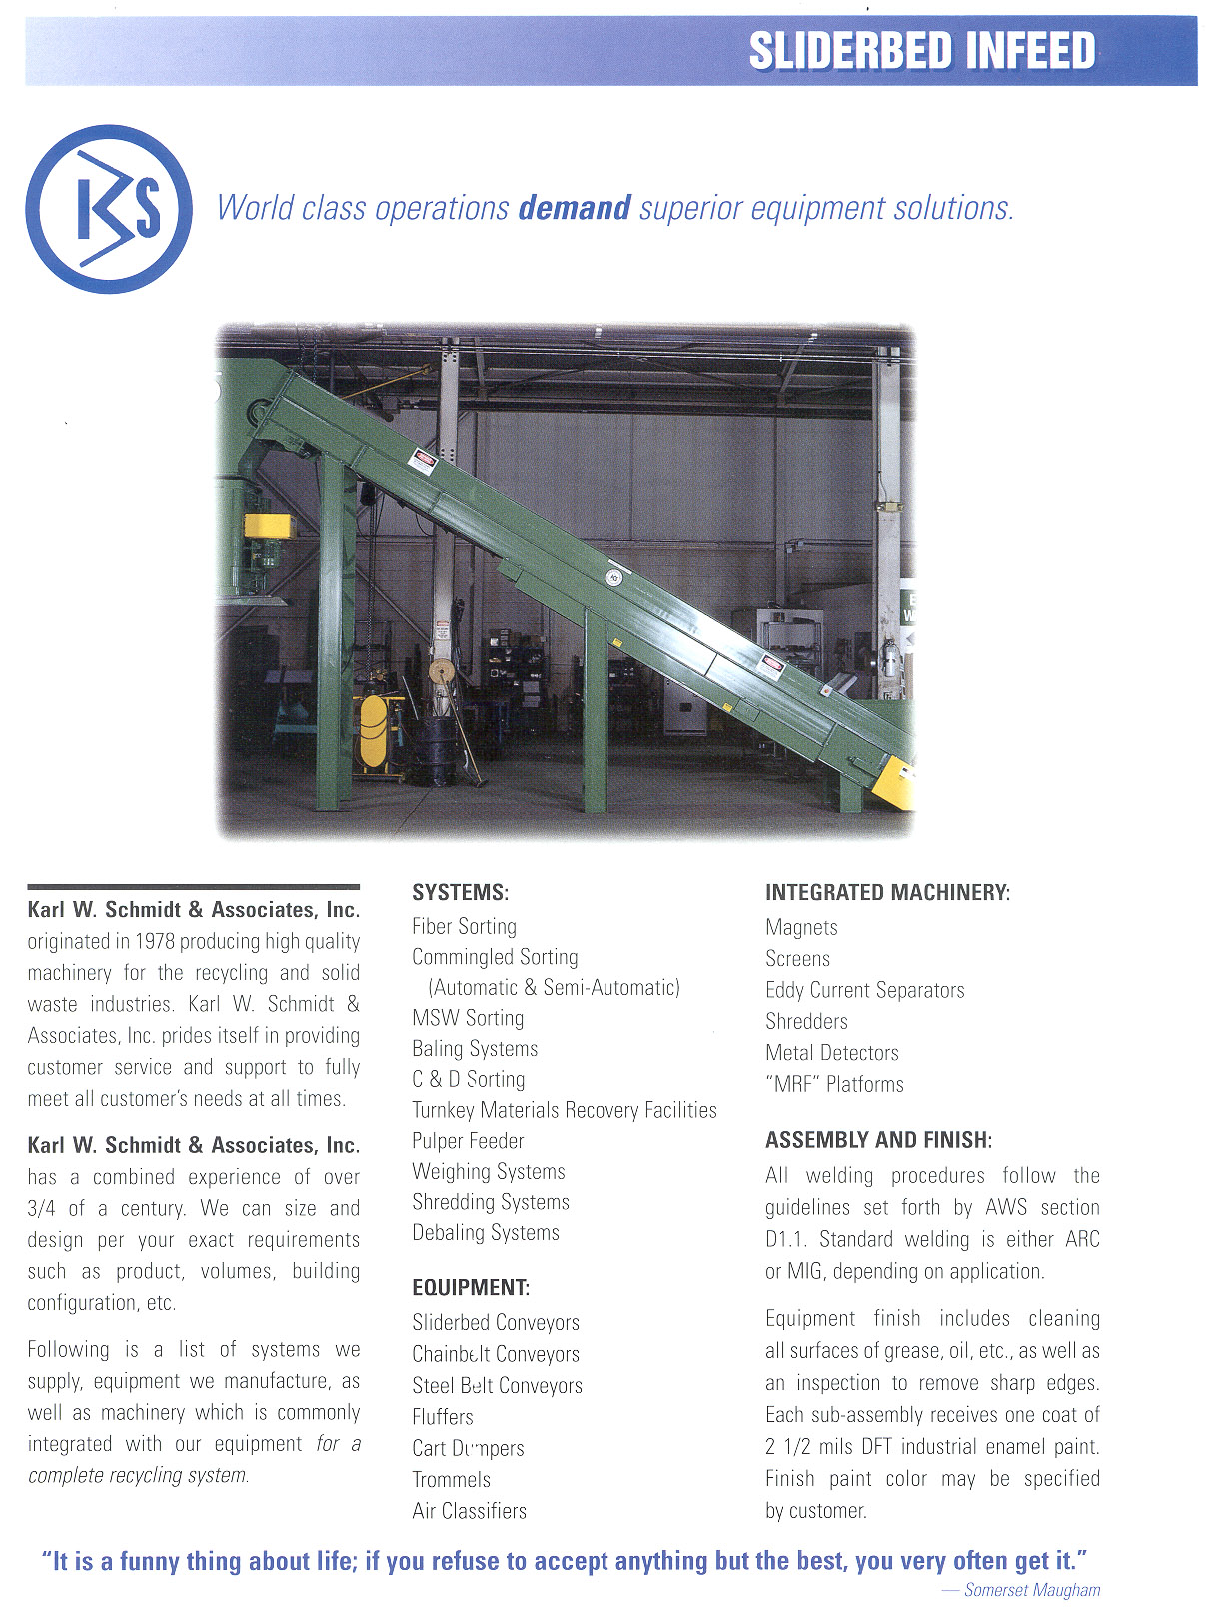 Learn more about the Sliderbed Conveyor in the Karl W. Schmidt Brochure.